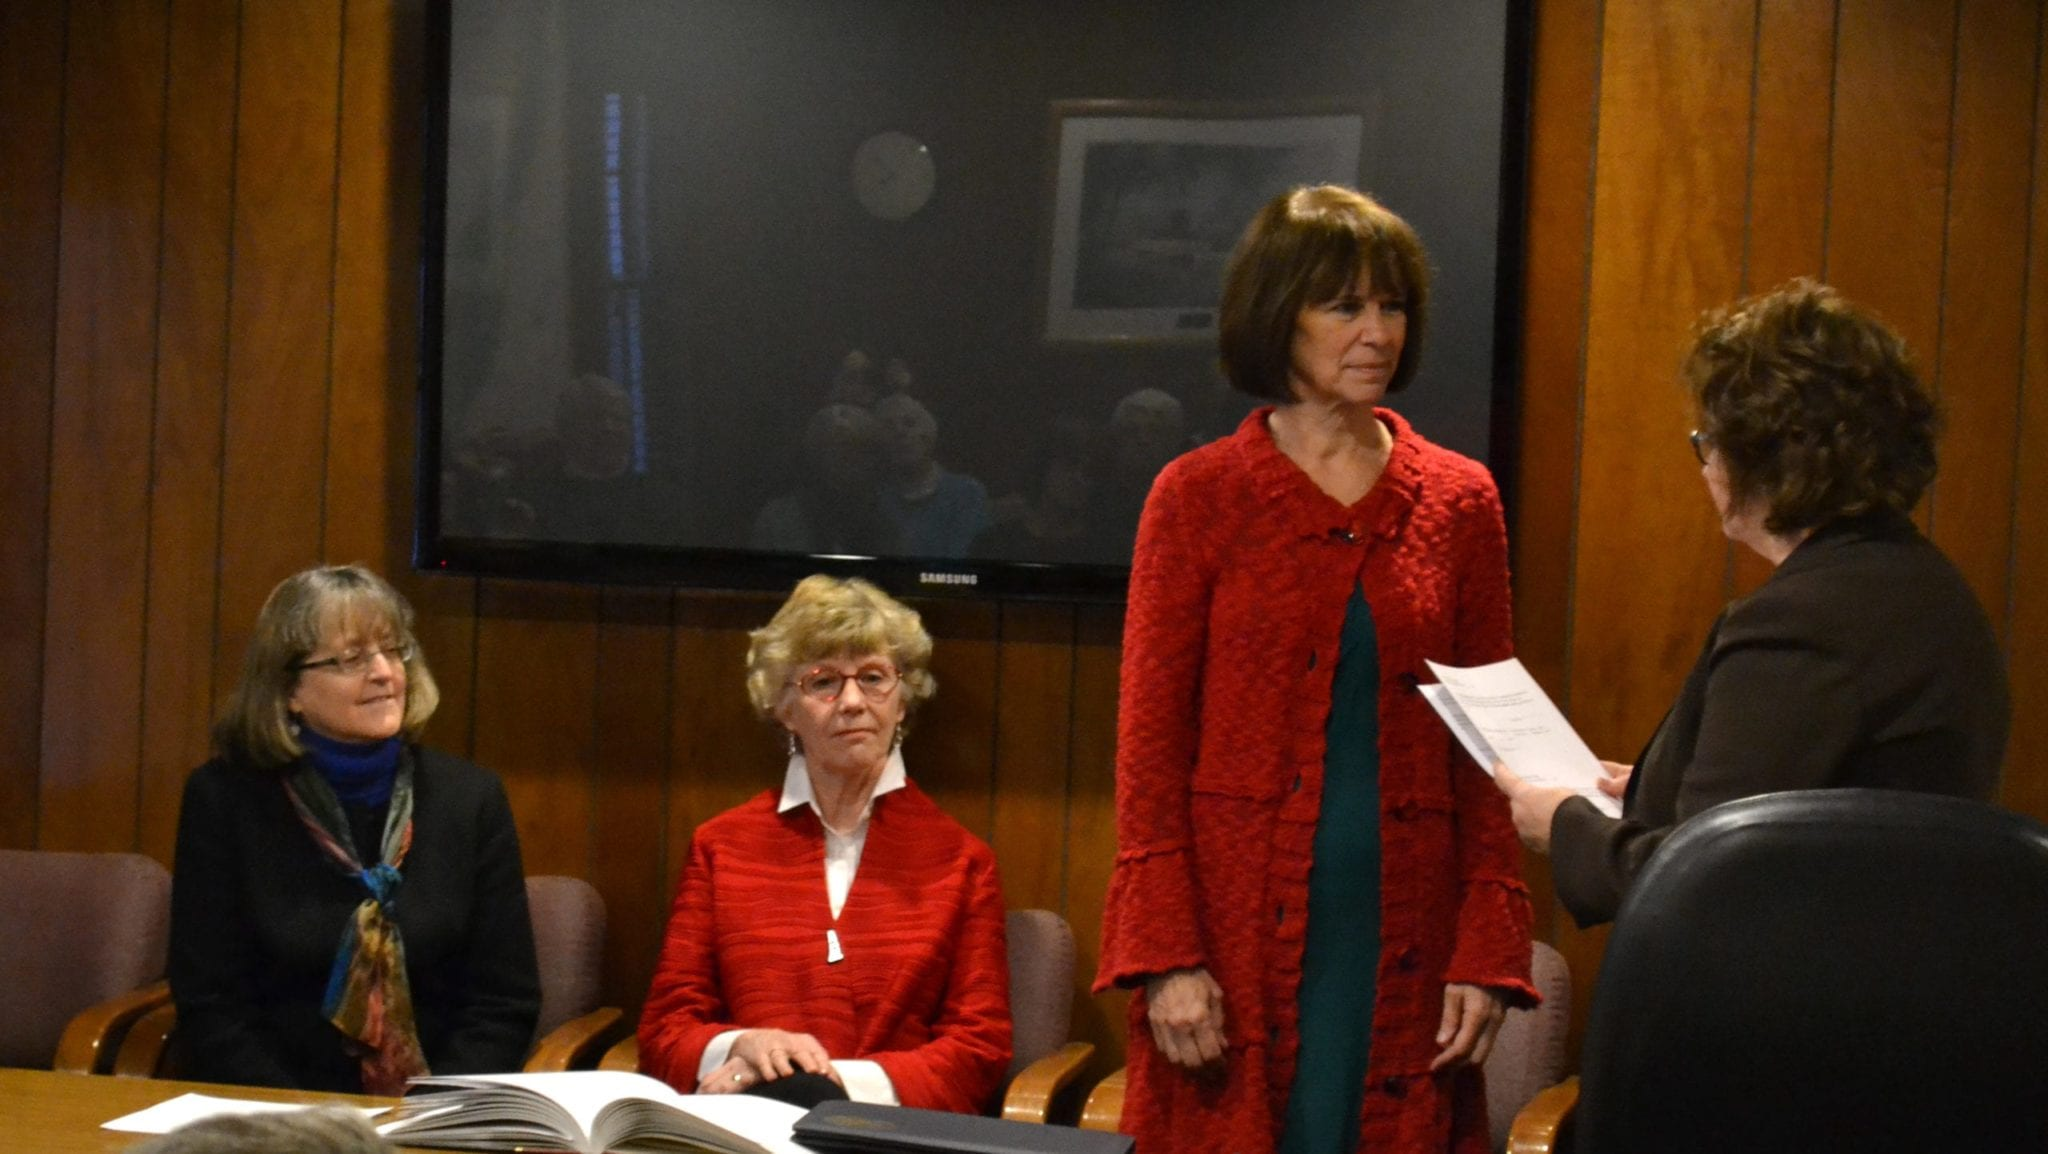 Skaneateles electees prepare to start terms, take oaths